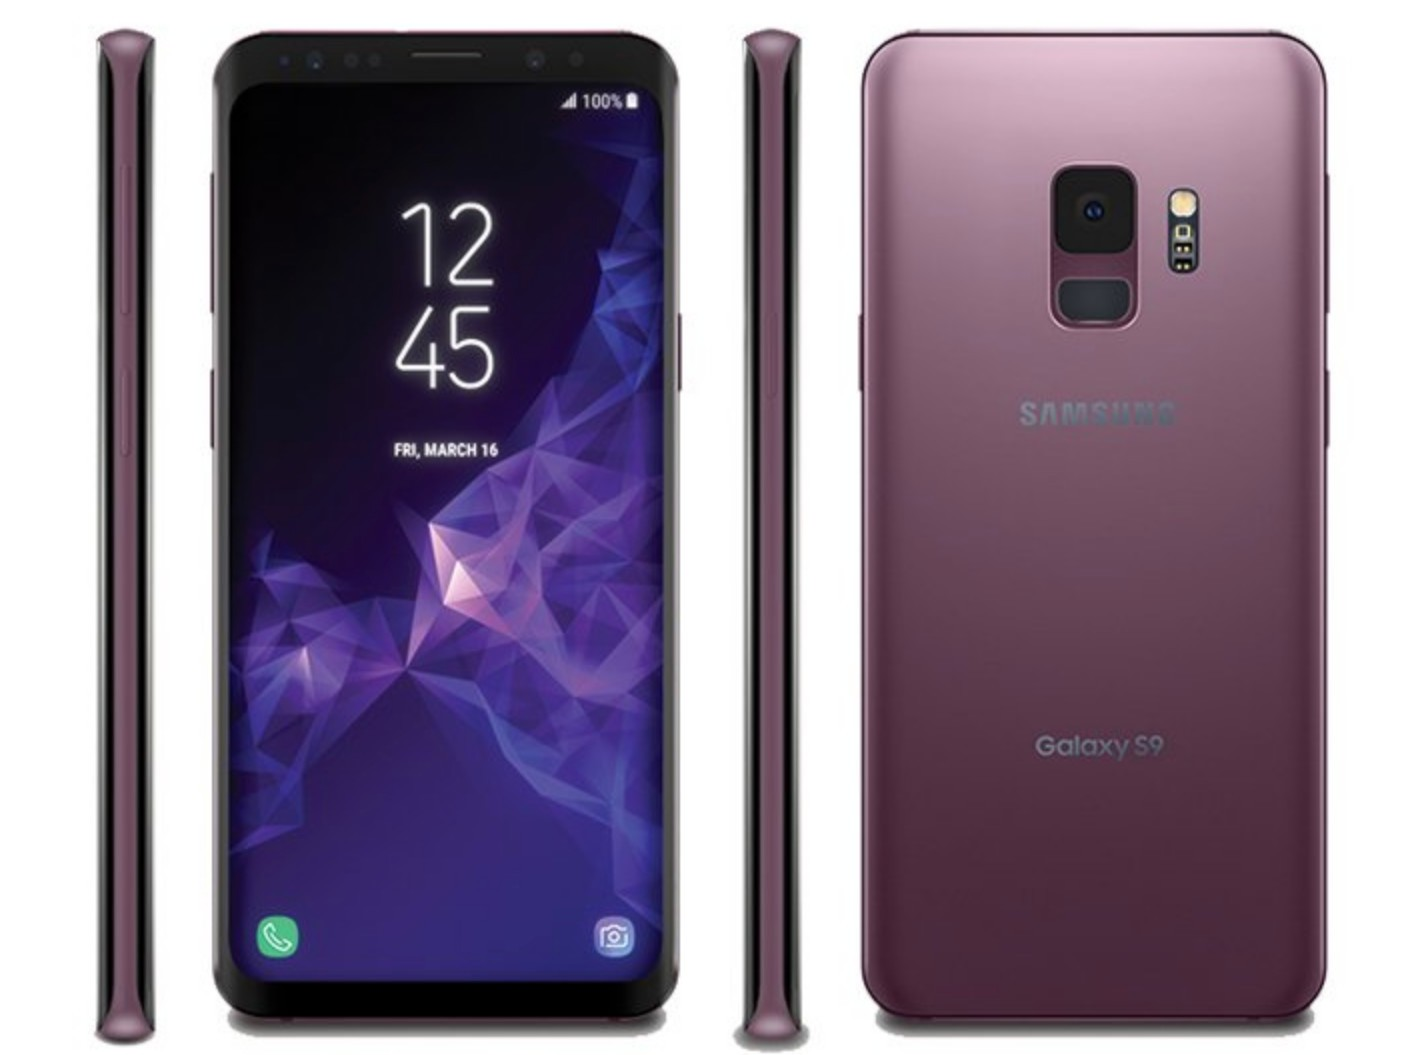 Samsung Galaxy S9 and S9+ to be announced this February 2018